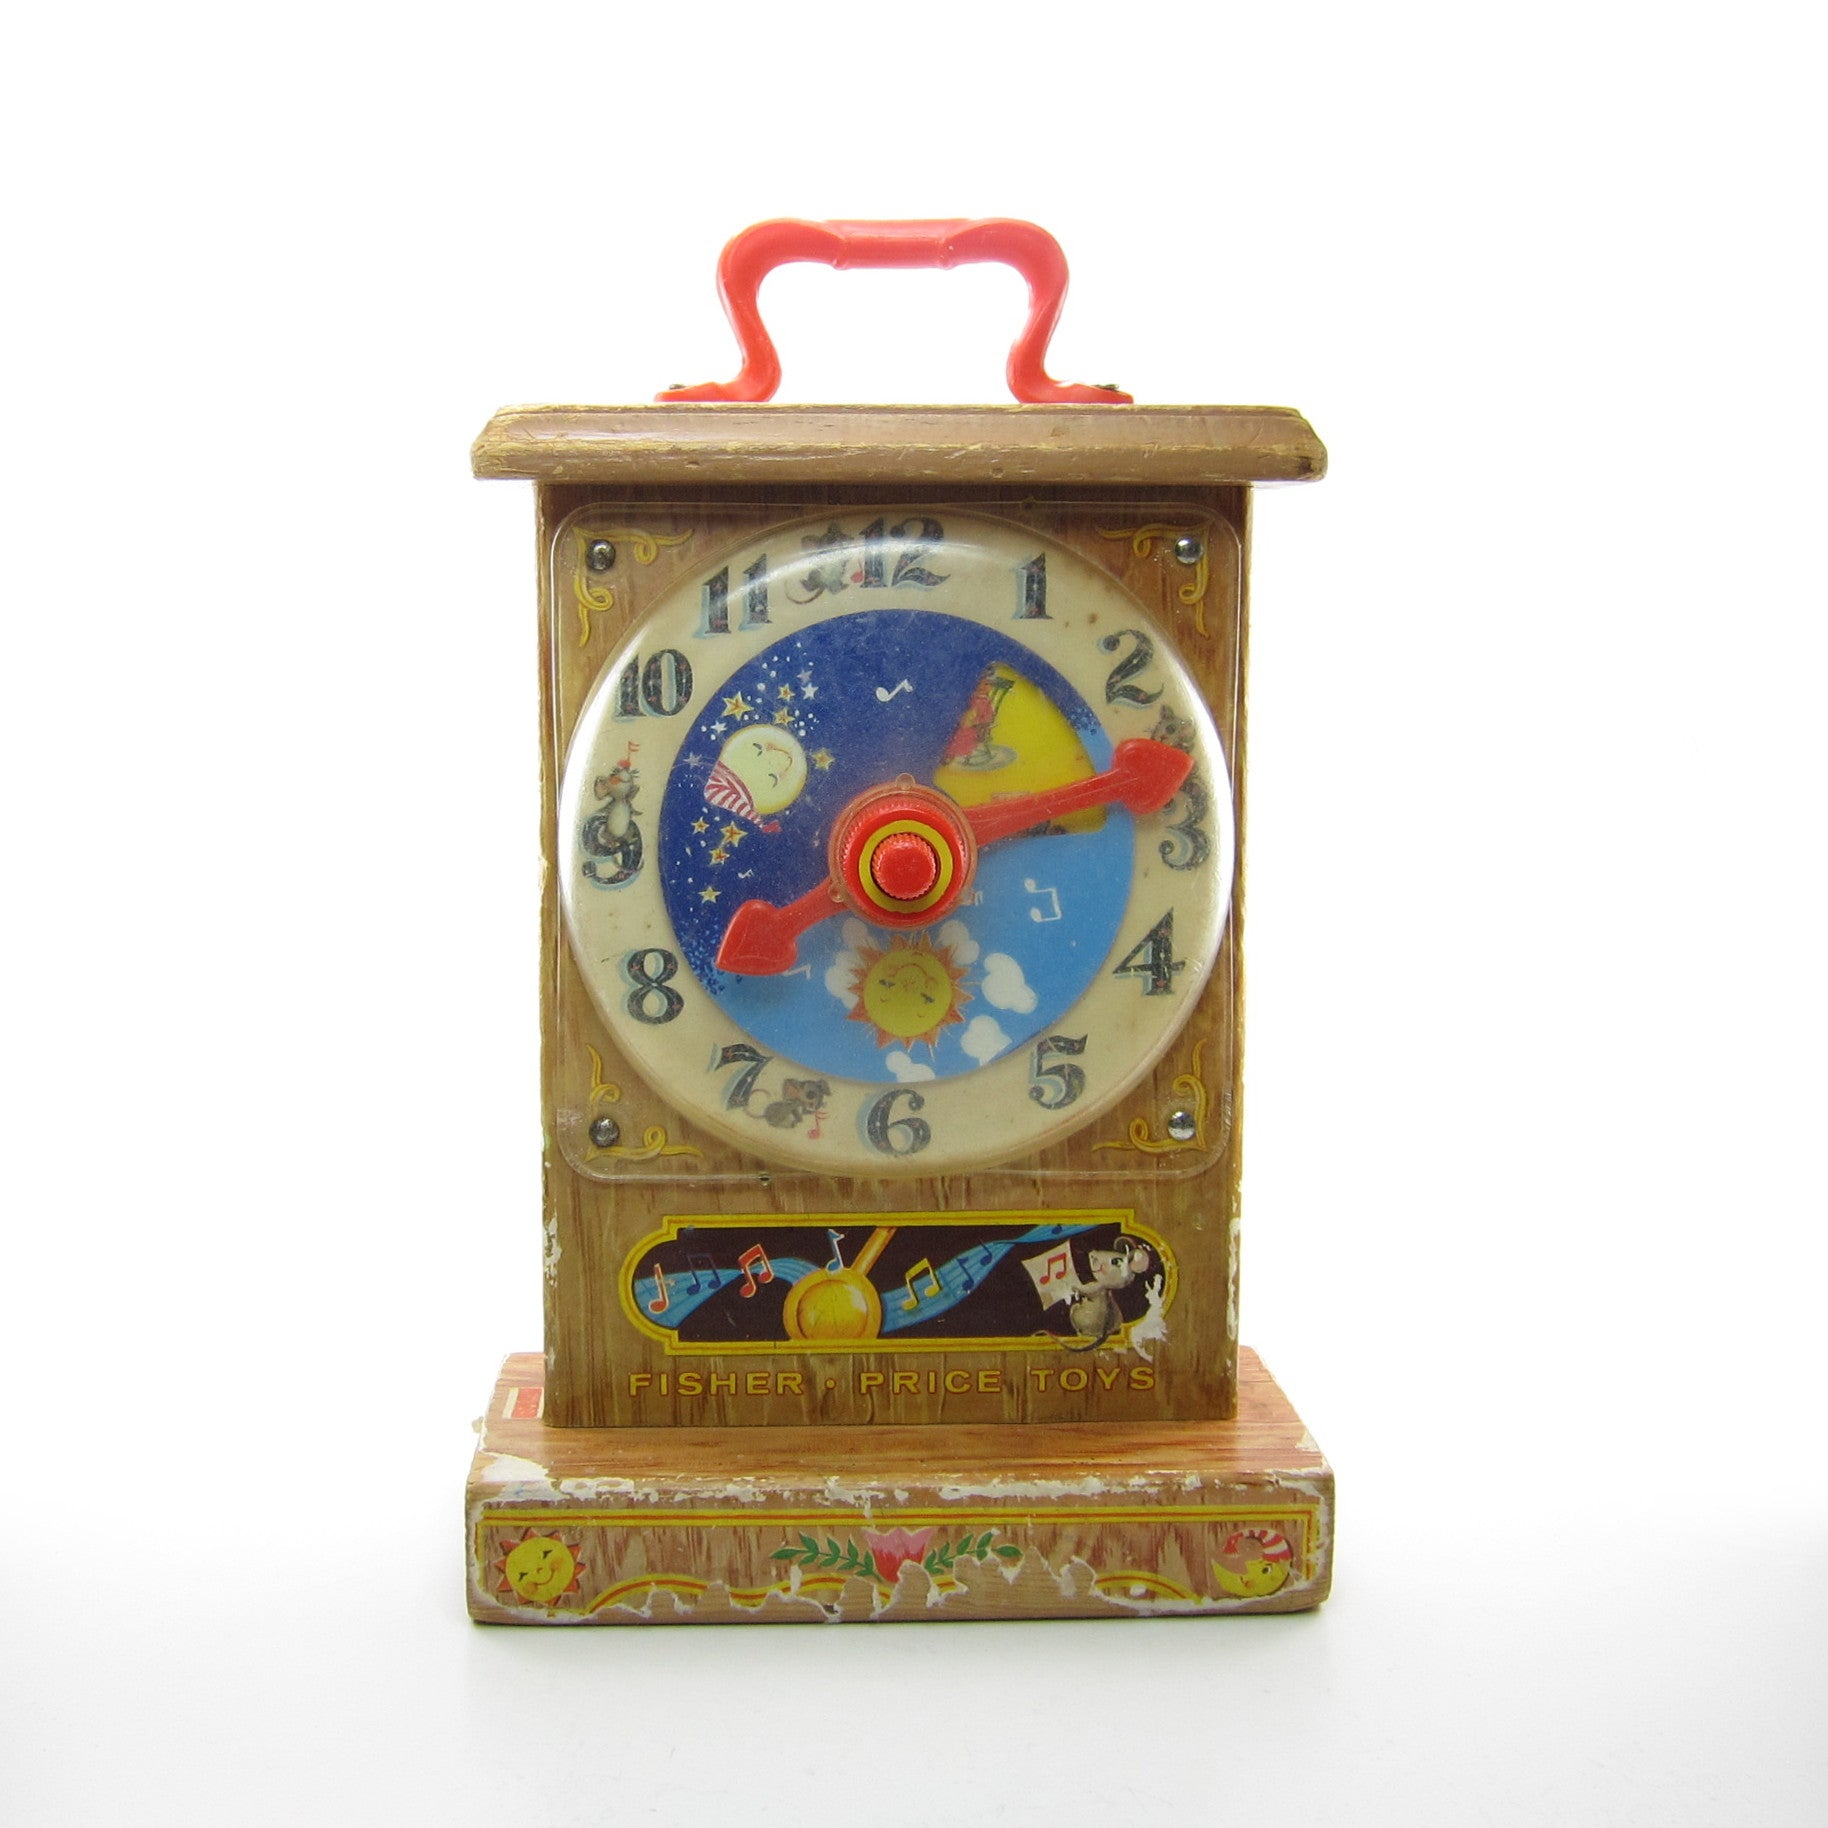 Fisher-Price Tick Tock teaching clock vintage 1964 toy